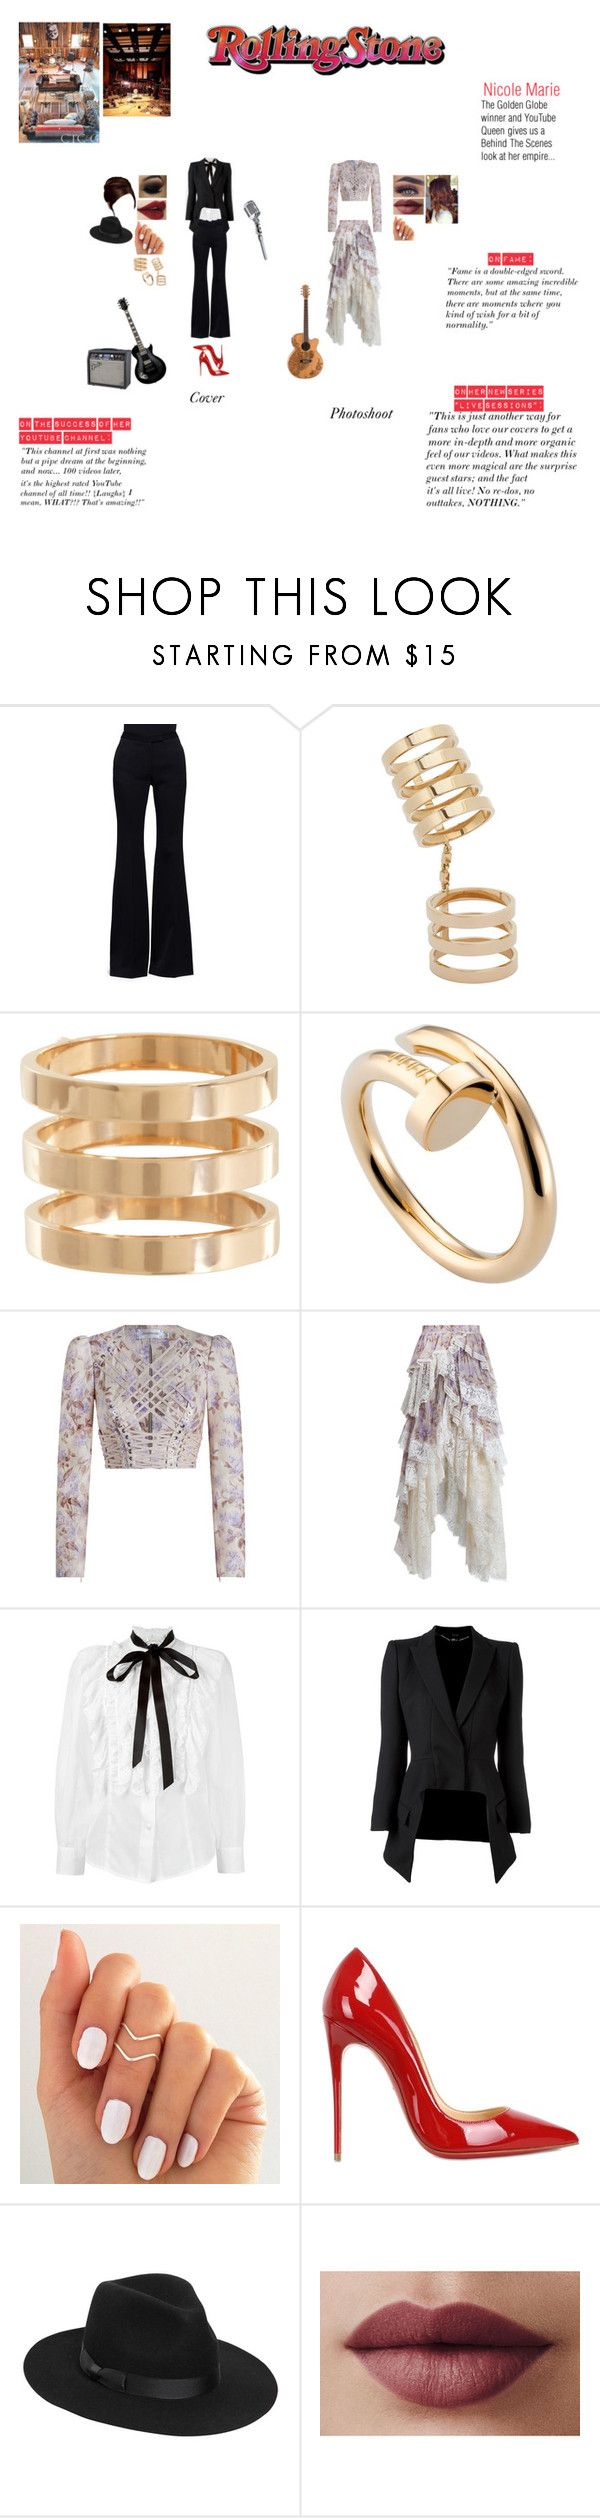 """""""Rolling Stone Magazine Photoshoot"""" by nikki-usmc92 ❤ liked on Polyvore featuring Alexander McQueen, Grassroots, Repossi, Cartier, Zimmermann, Marc Jacobs, Christian Louboutin, Lack of Color and LORAC"""